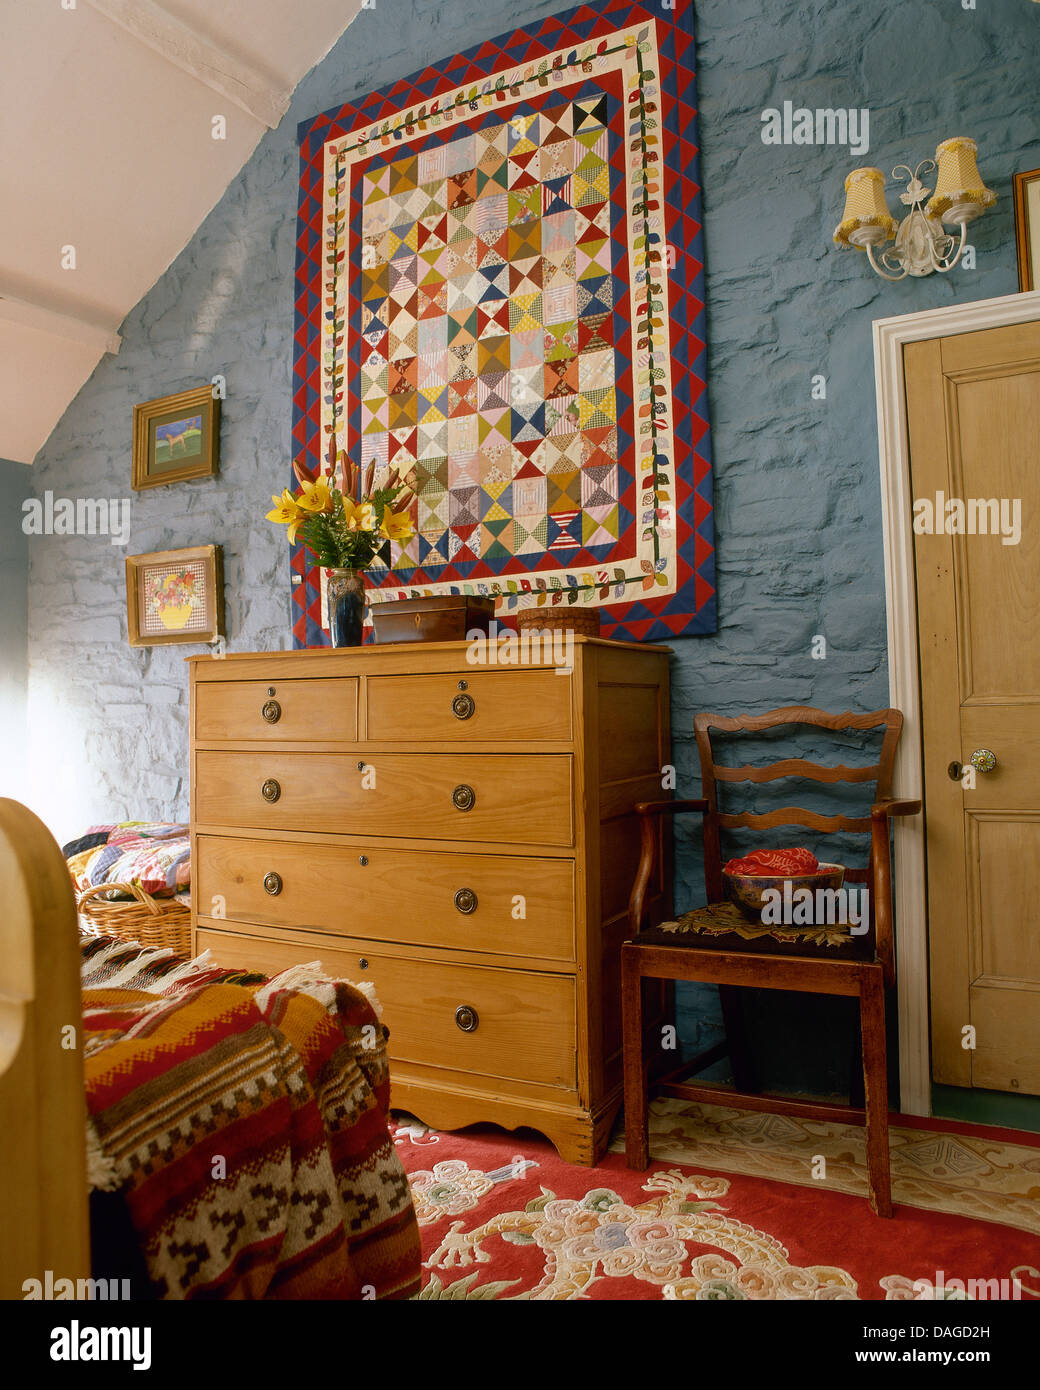 Pine Bedroom Chest Of Drawers Patchwork Quilt On Wall Above Pine Chest Of Drawers In Attic